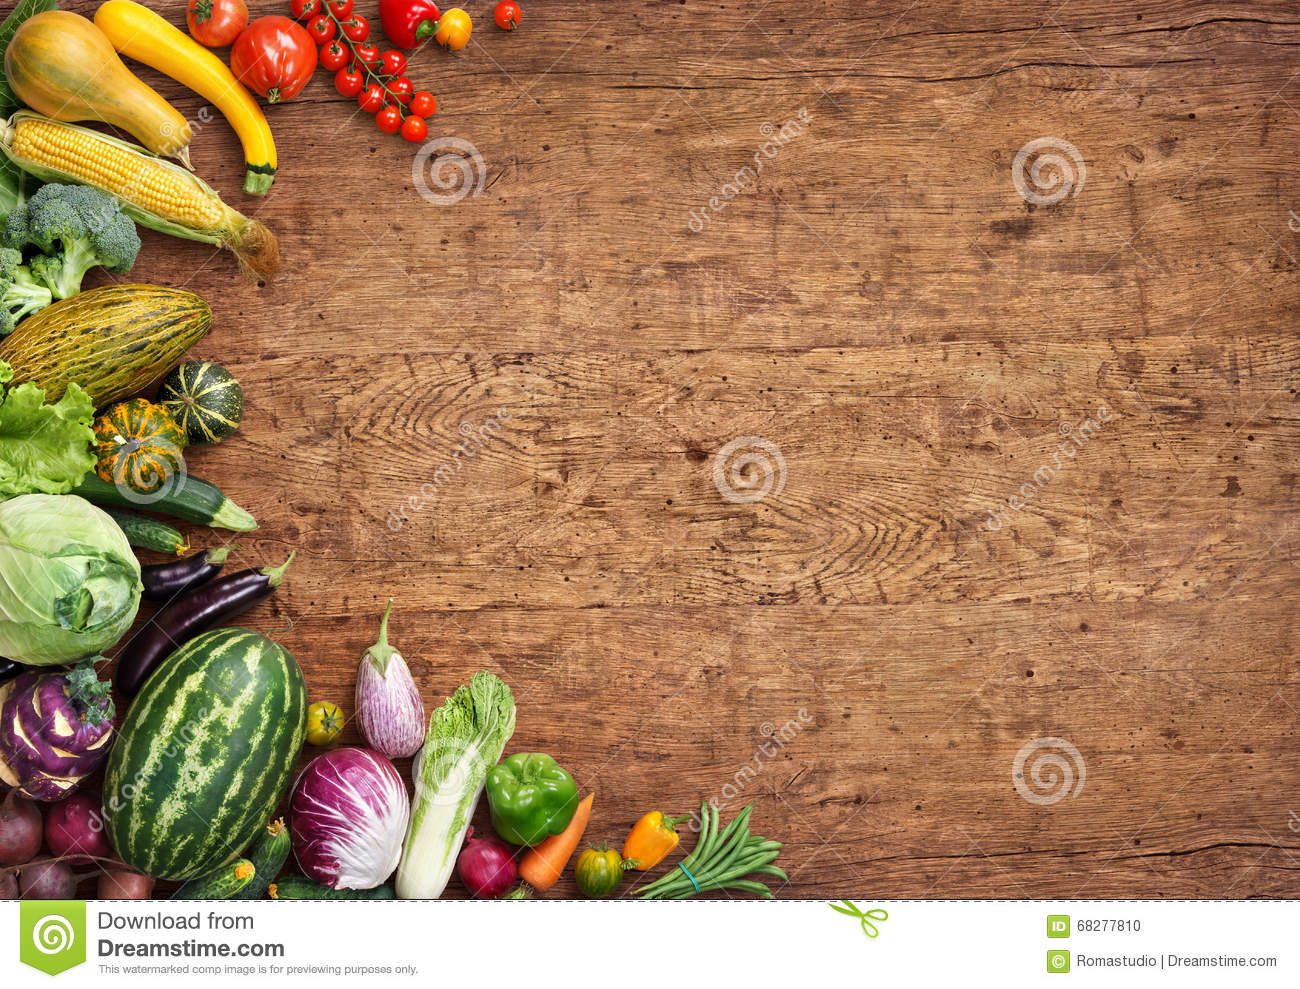 Food background studio photo of different fruits and vegetables - Background Different Eating Fruits Healthy High Old Photo Product Resolution Studio Table Vegetables Wooden Close Food